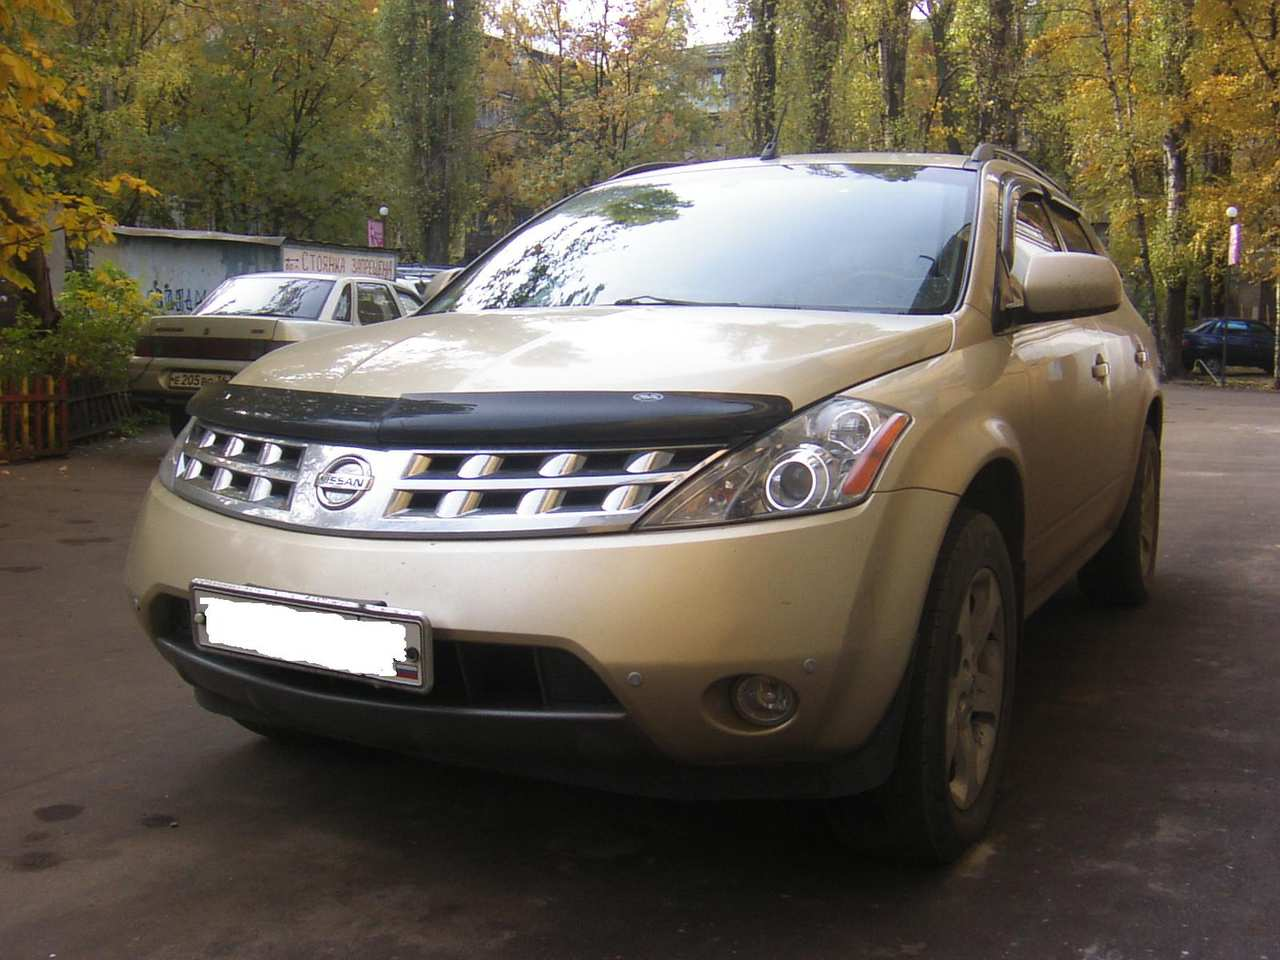 Nissan Cvt Transmission Problems >> Used 2002 Nissan Murano Photos, 3500cc., Gasoline, CVT For ...